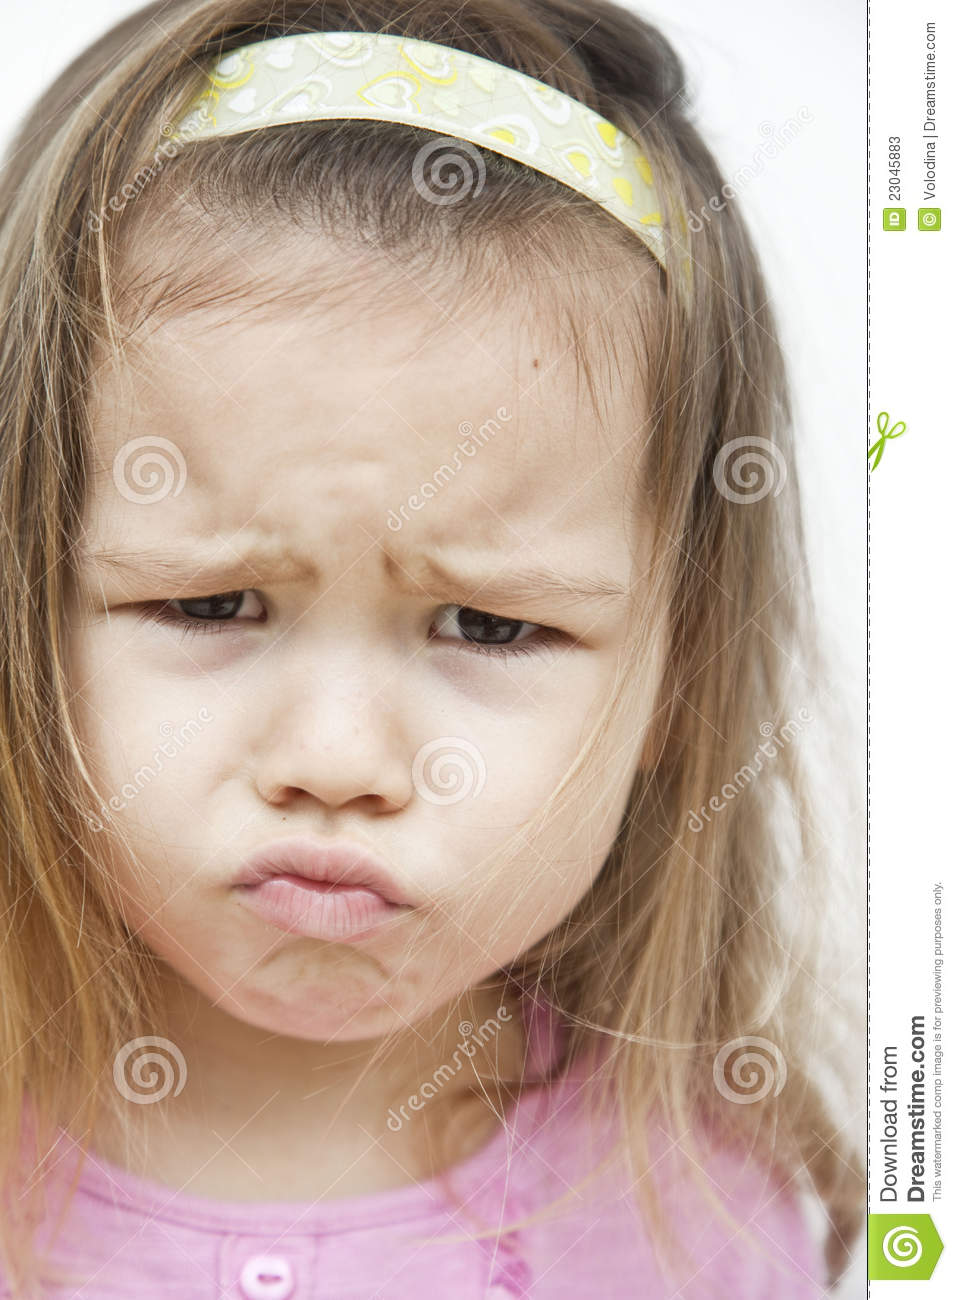 Asian girls who grimaces stock image. Image of emotions - 23045883